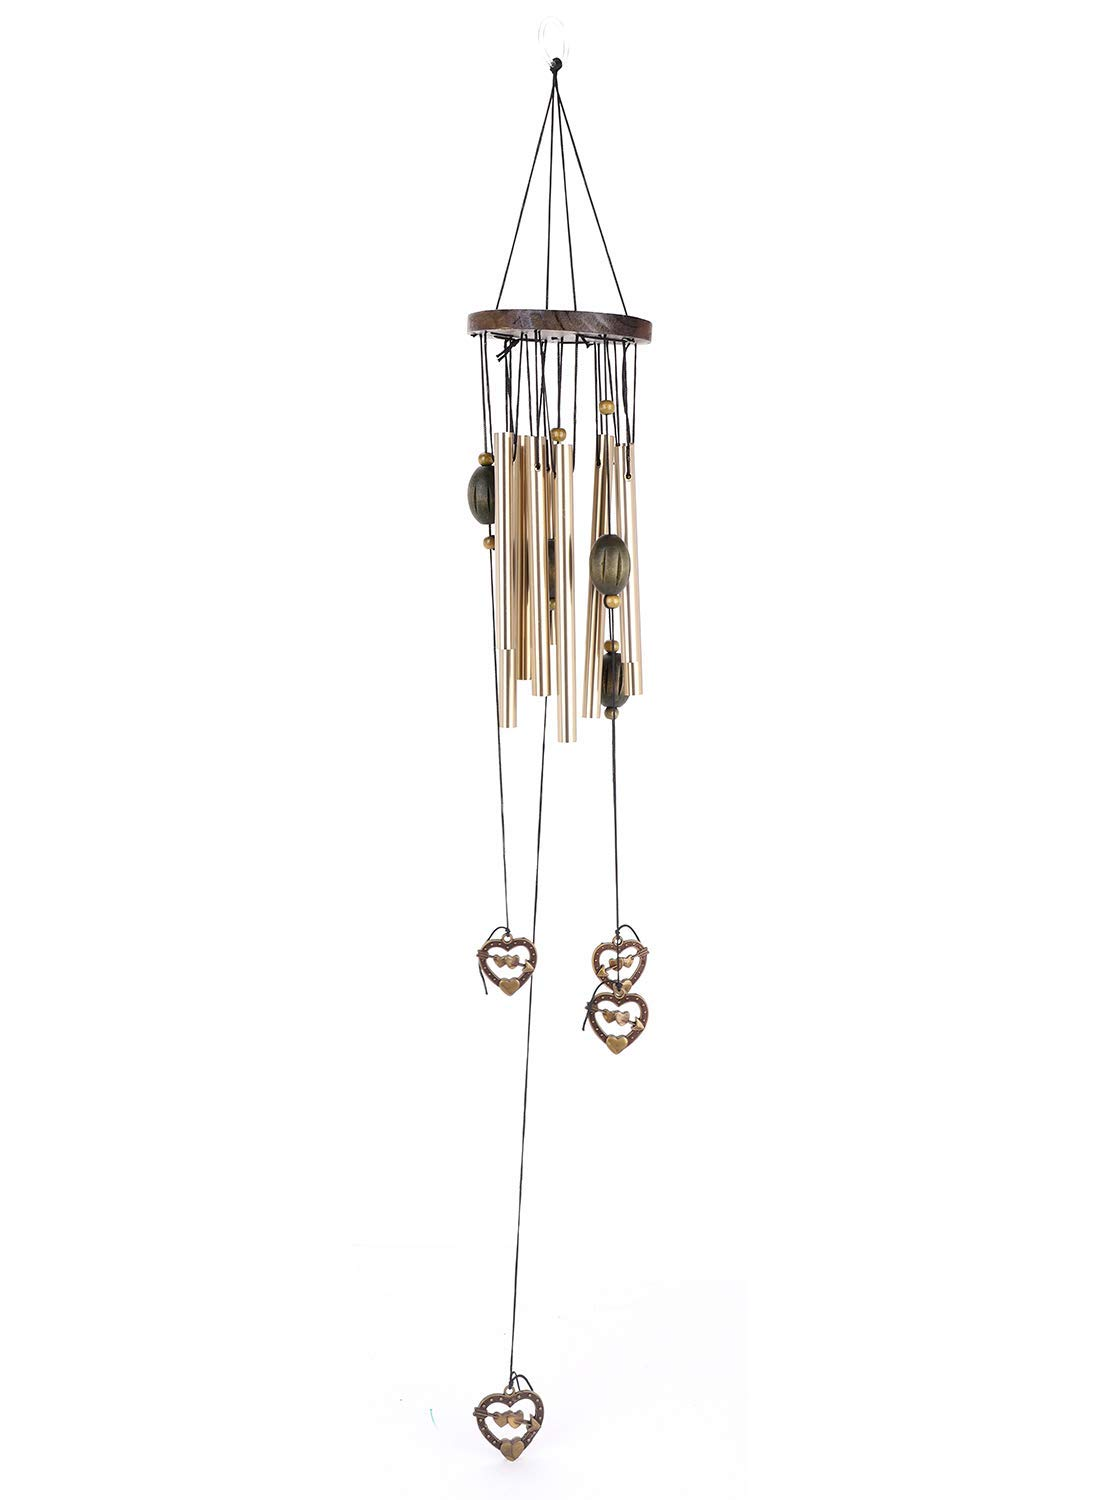 QCHOMEE Love Heart 9 Tubes Wind Chimes Personalized Memorial Gift Antique Metal Multi-Tube Anti-Rust Wind Bells Outdoor Living Yard Garden Decor Wind Chimes